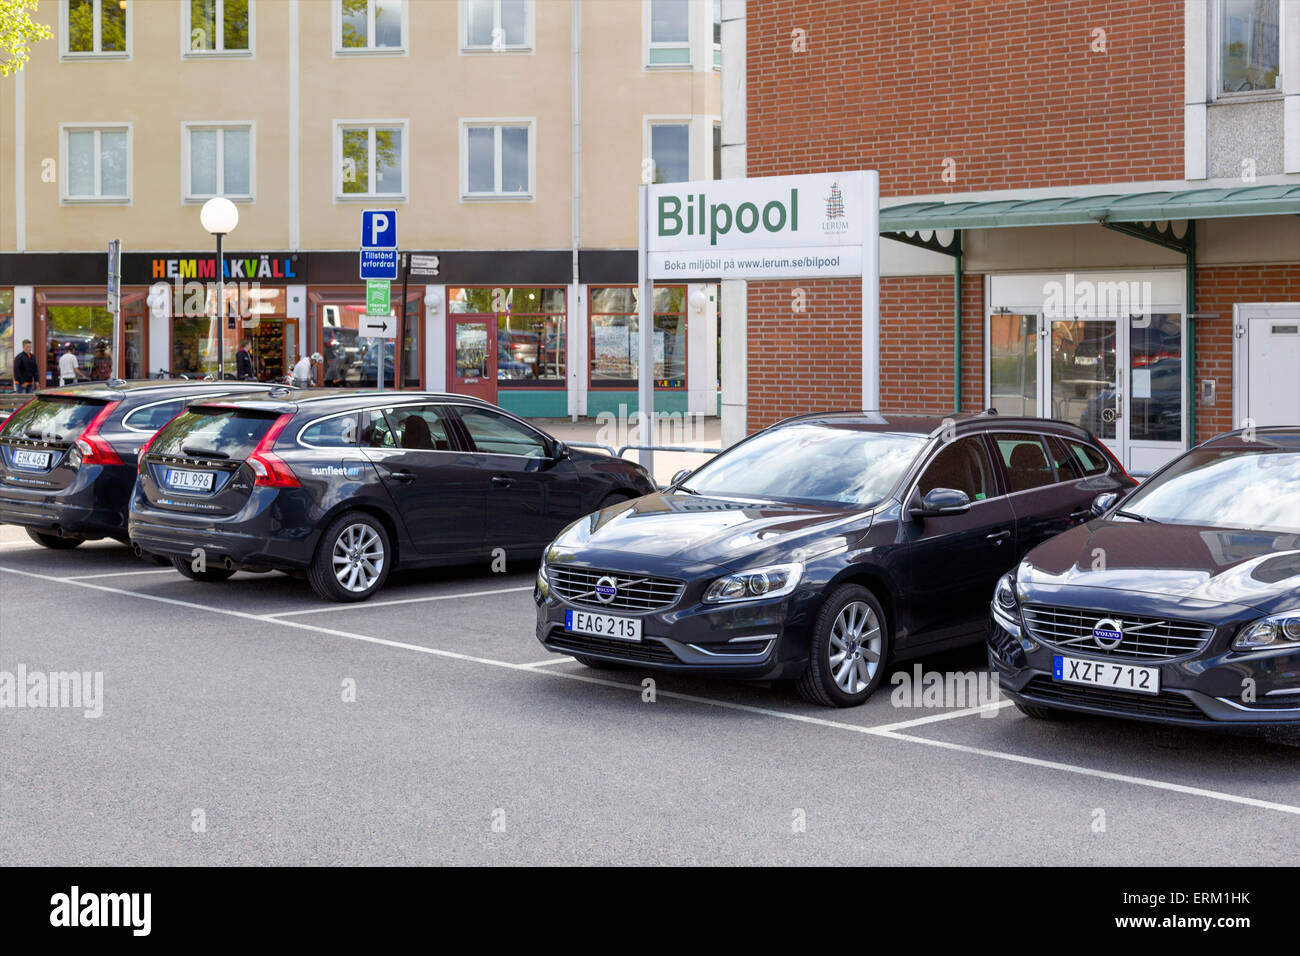 Sunfleet carpool parking lot with environmentally friendly Volvo cars in town center, Lerum, Sweden.  Model Release: - Stock Image